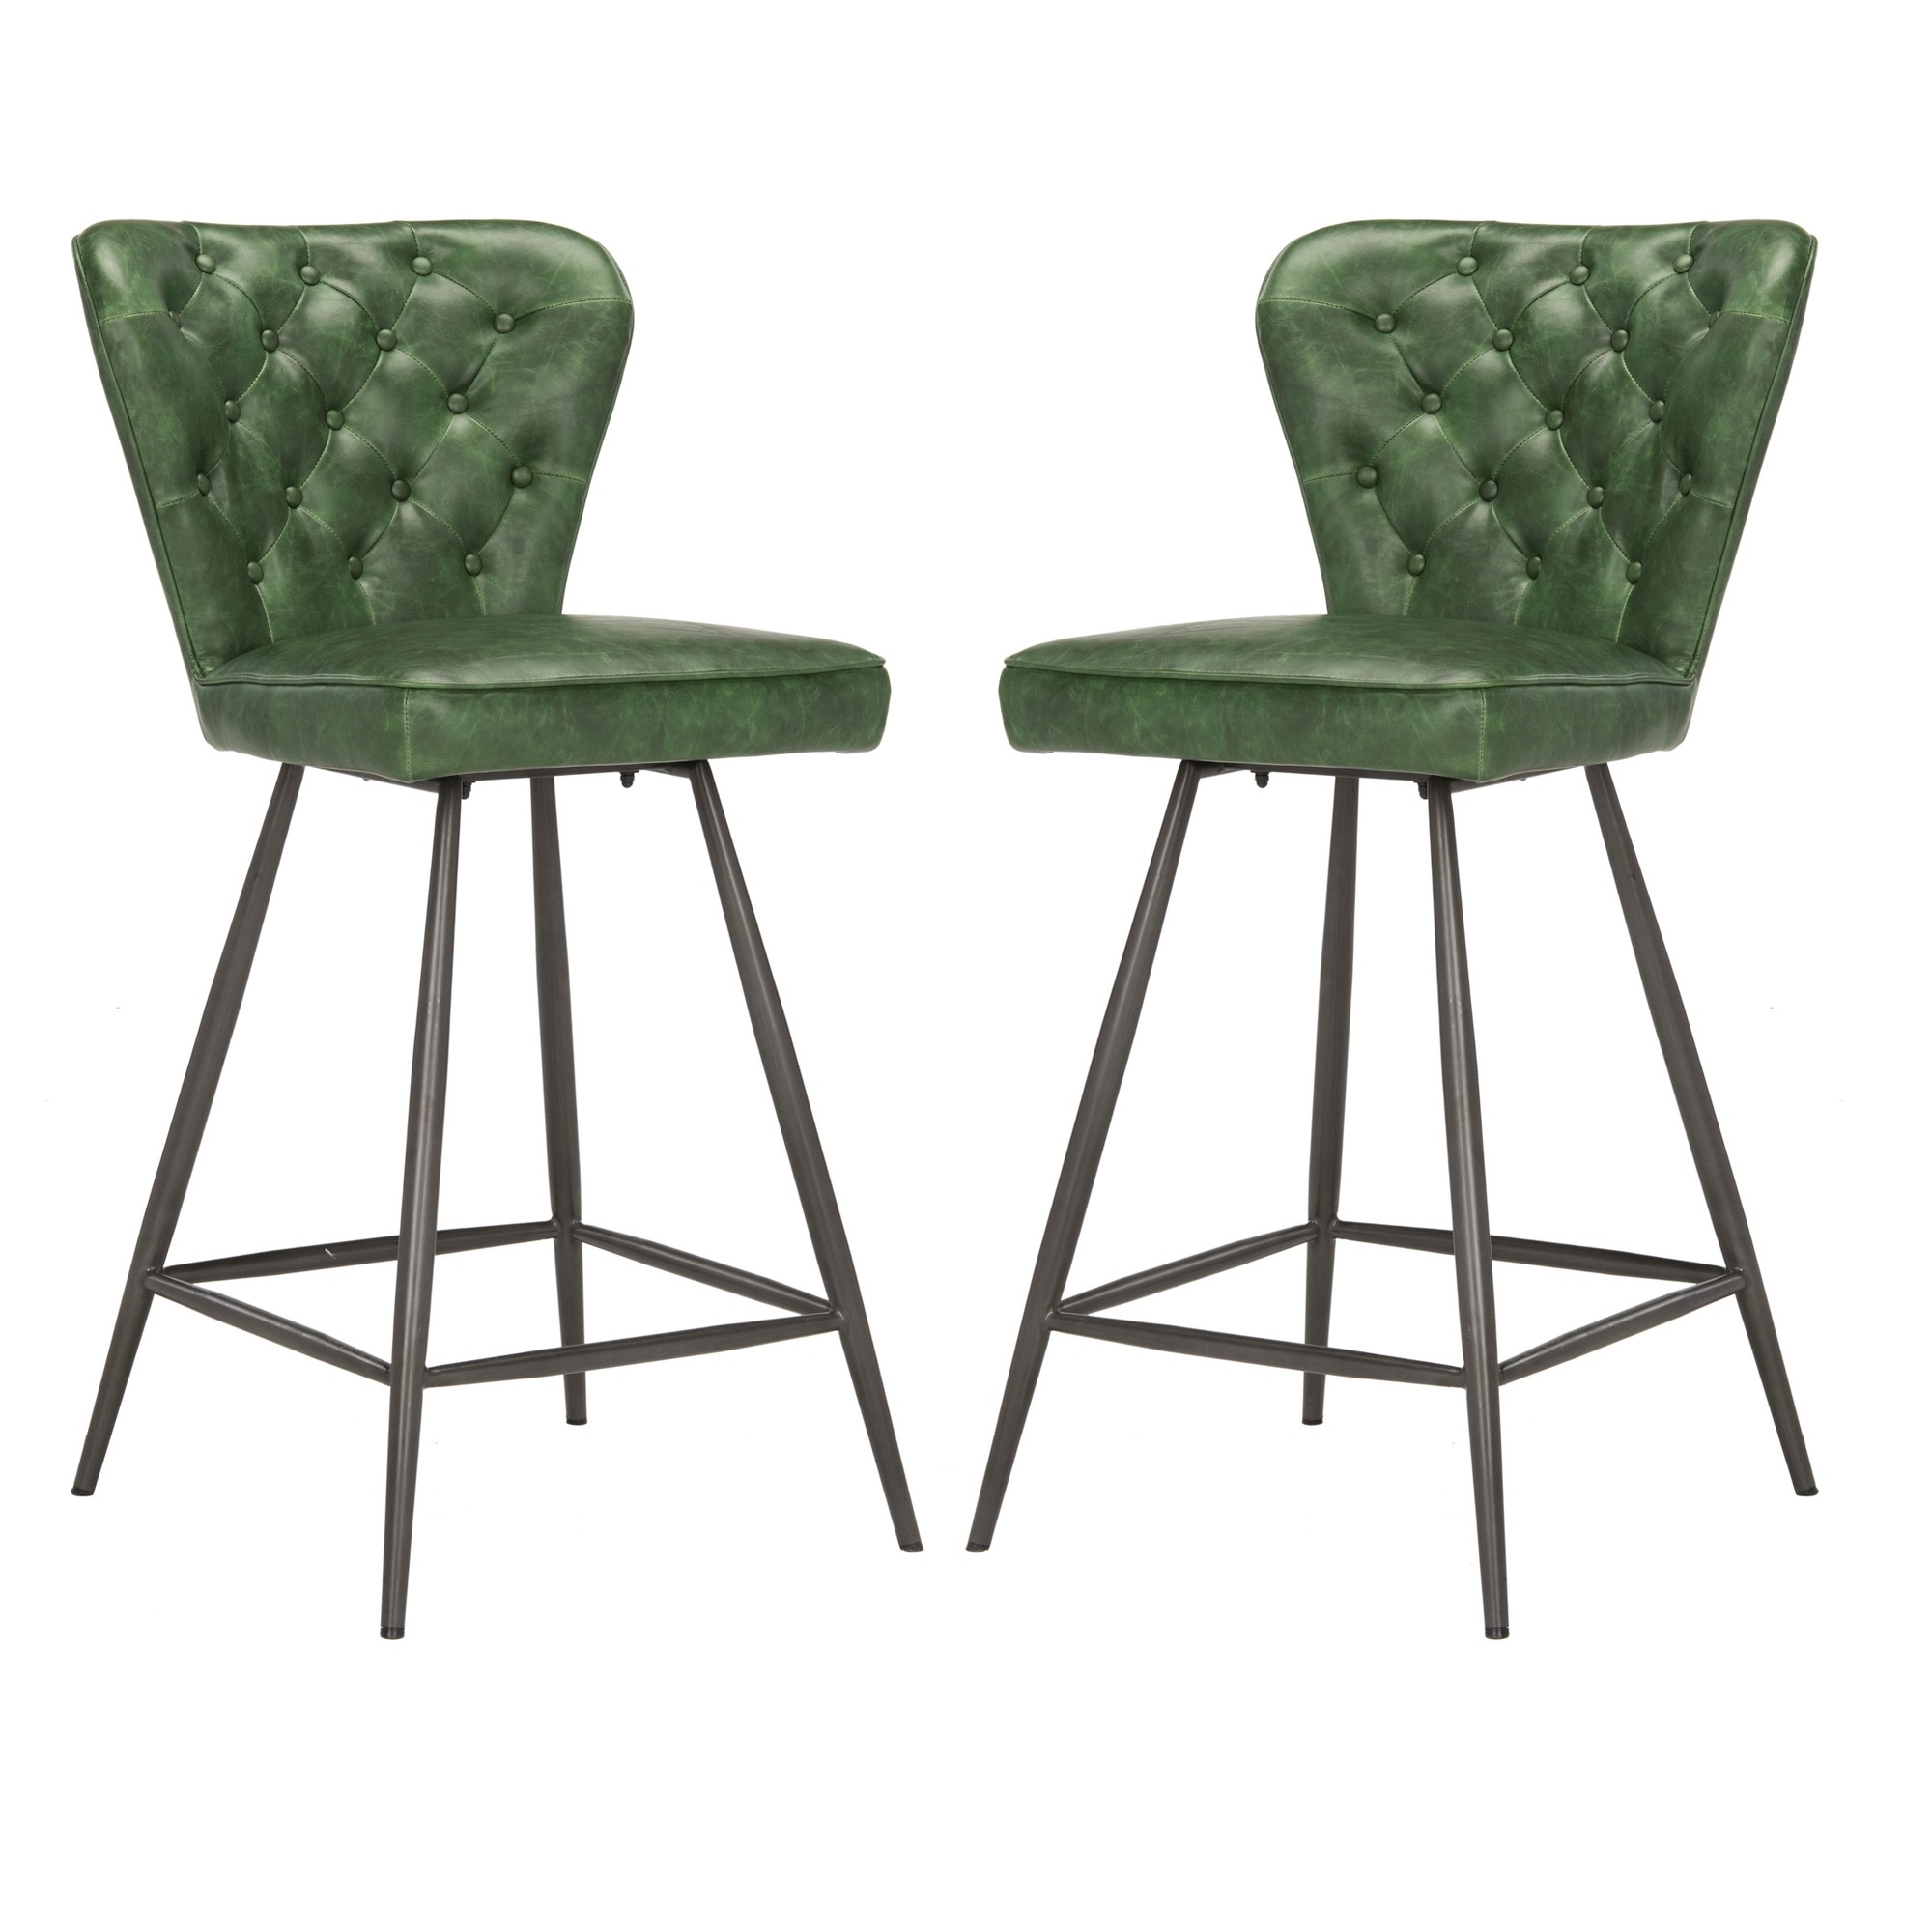 Counter and bar stools green safavieh